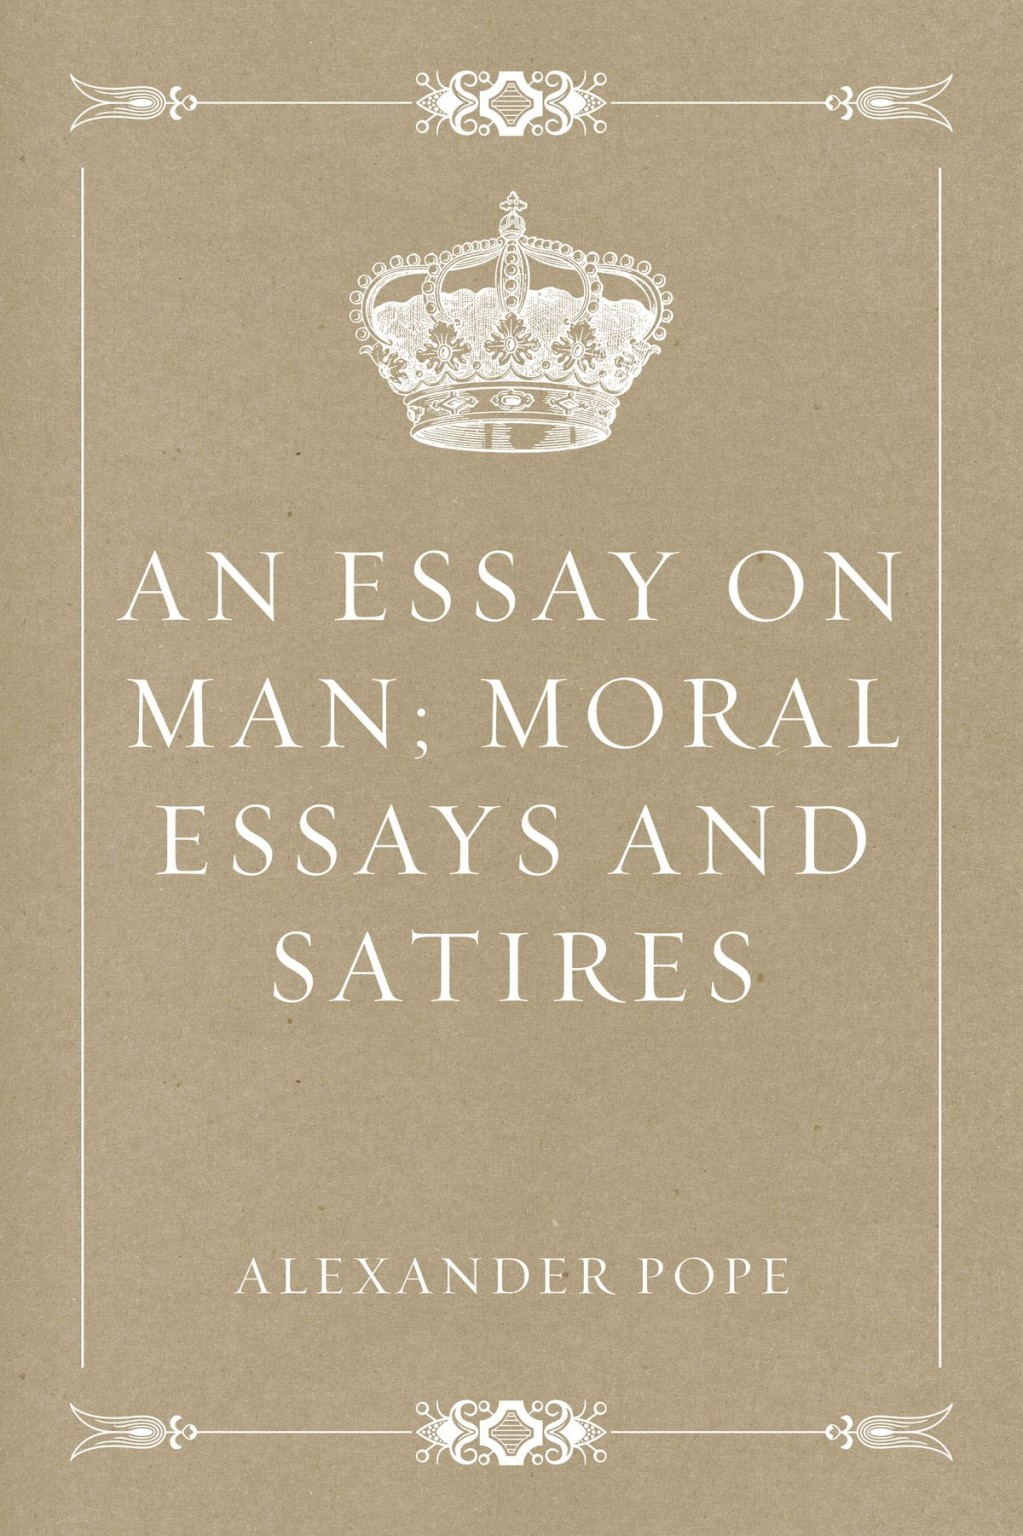 007 Essay Example An On Man Moral Essays And Satires Alexander Dreaded Pope Summary Epistle 2 Pdf Large